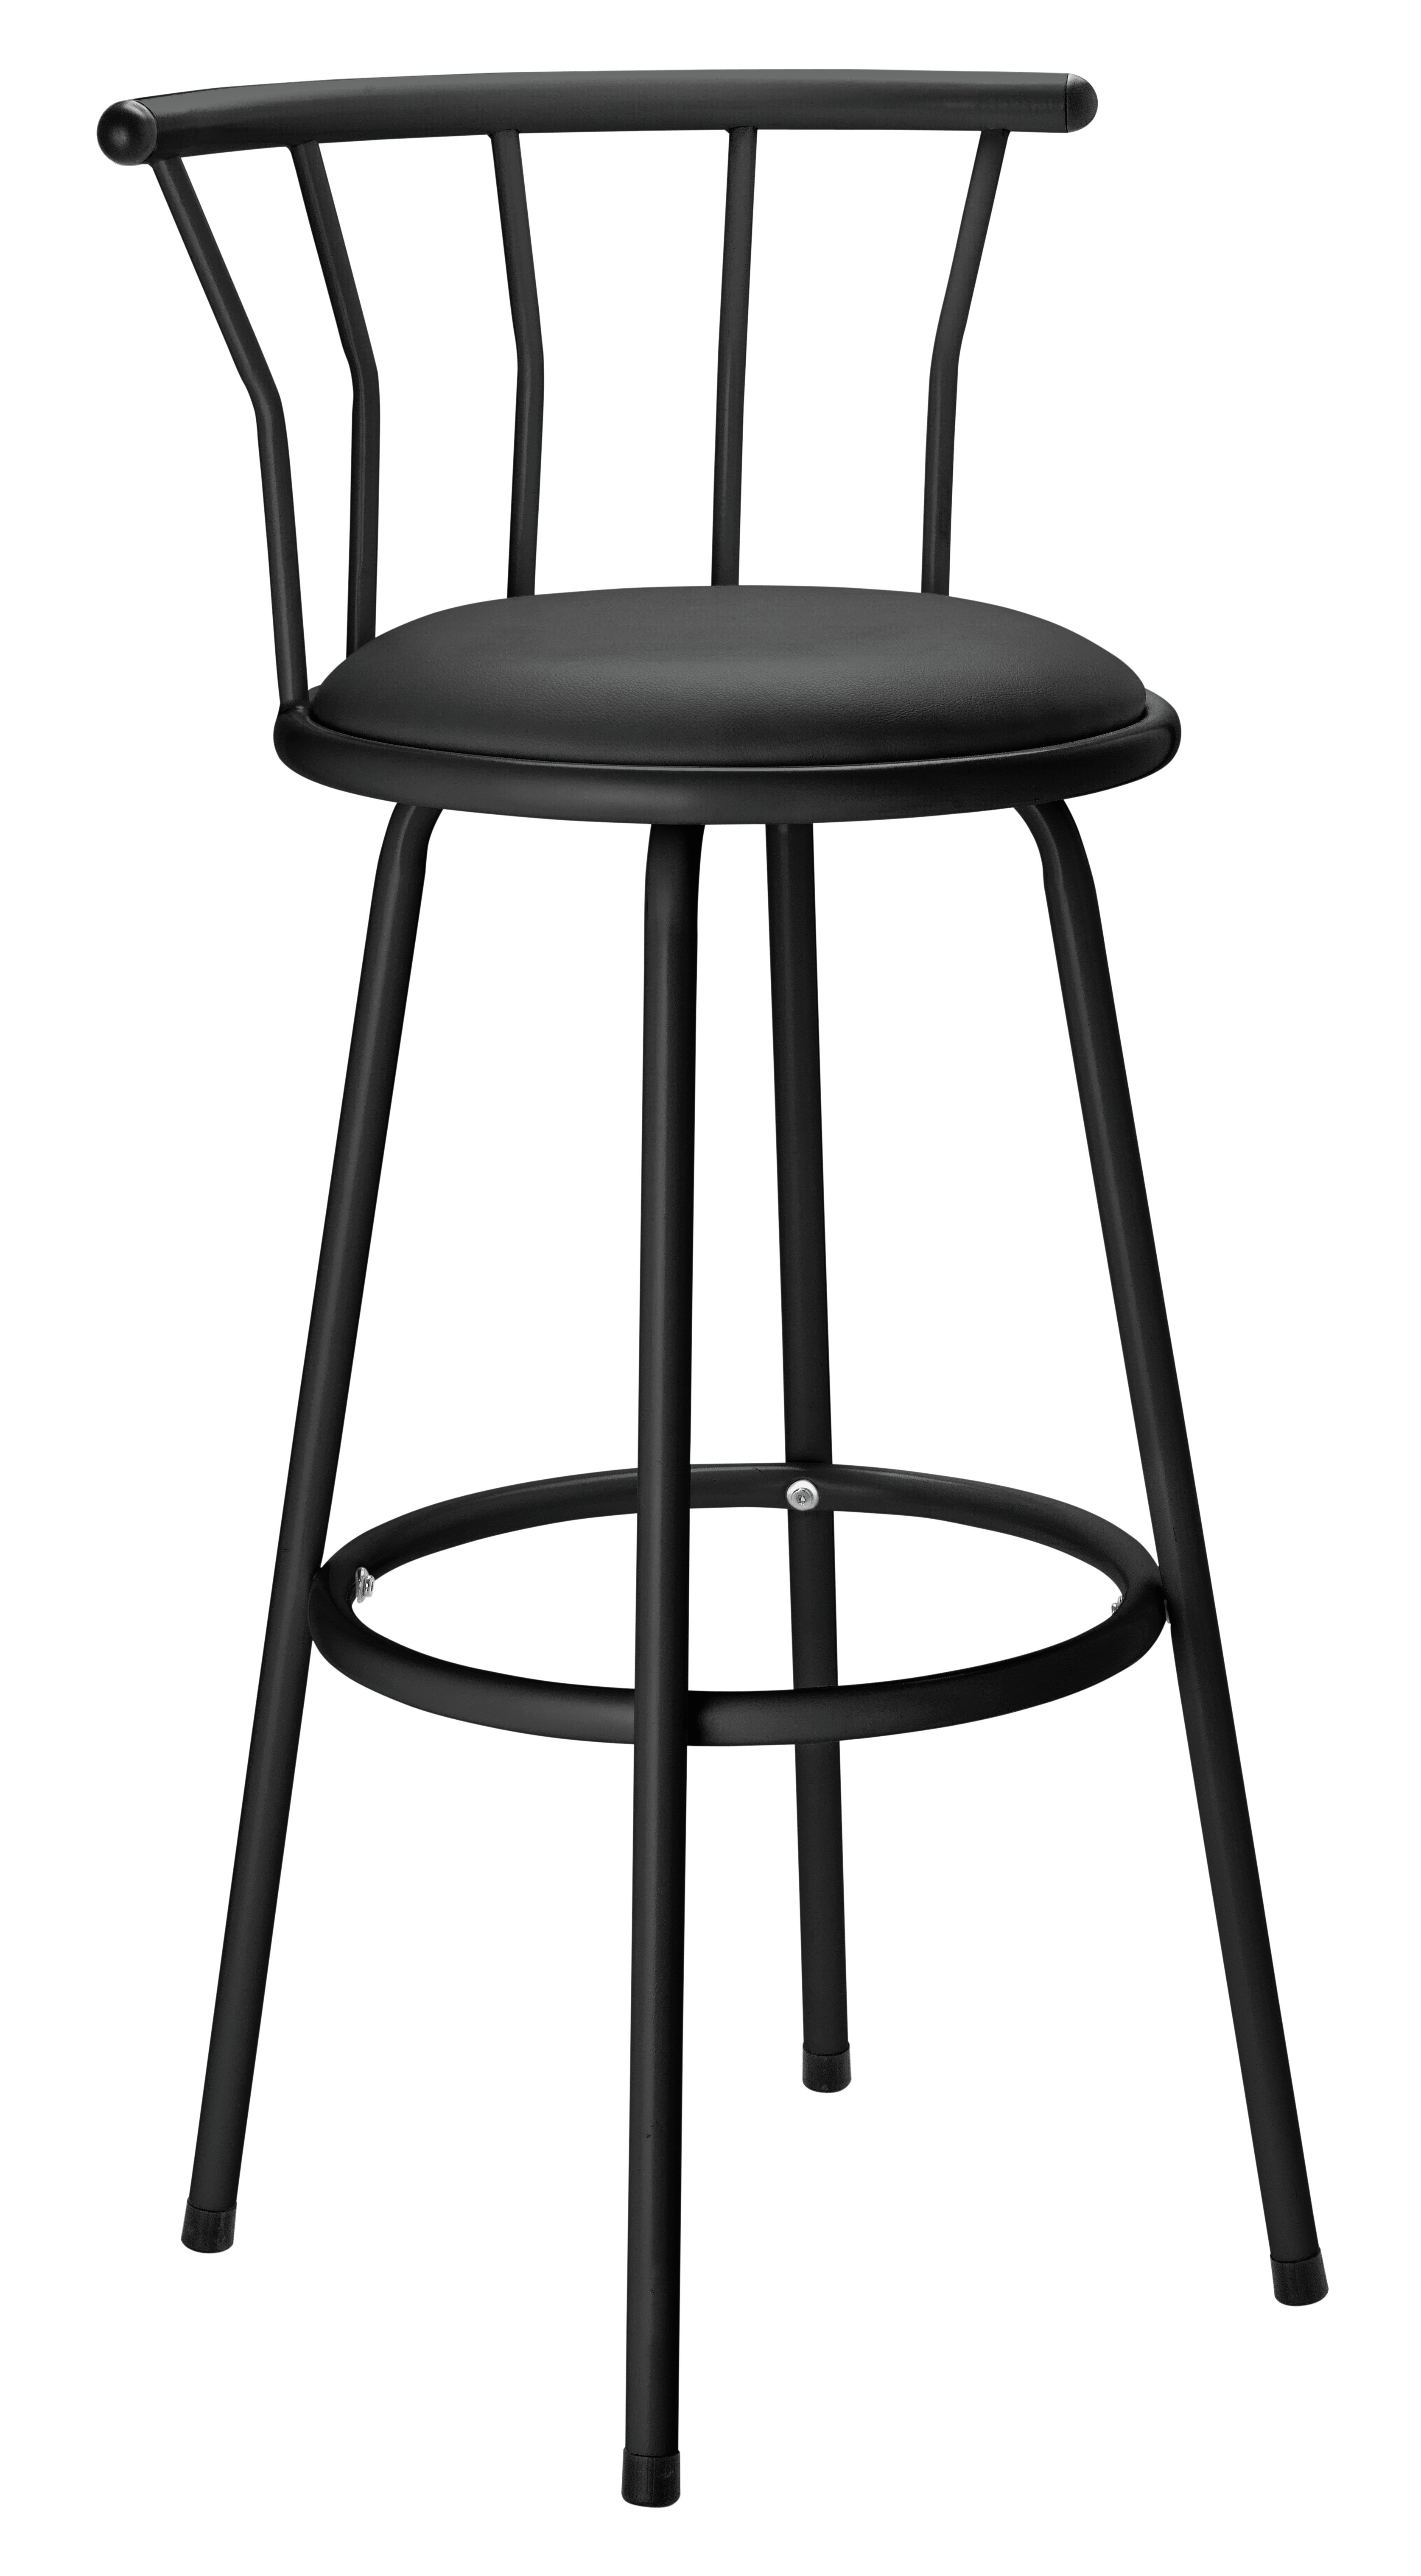 wooden kitchen chairs argos rectangular rubber chair glides buy hygena bar stools and at co uk your